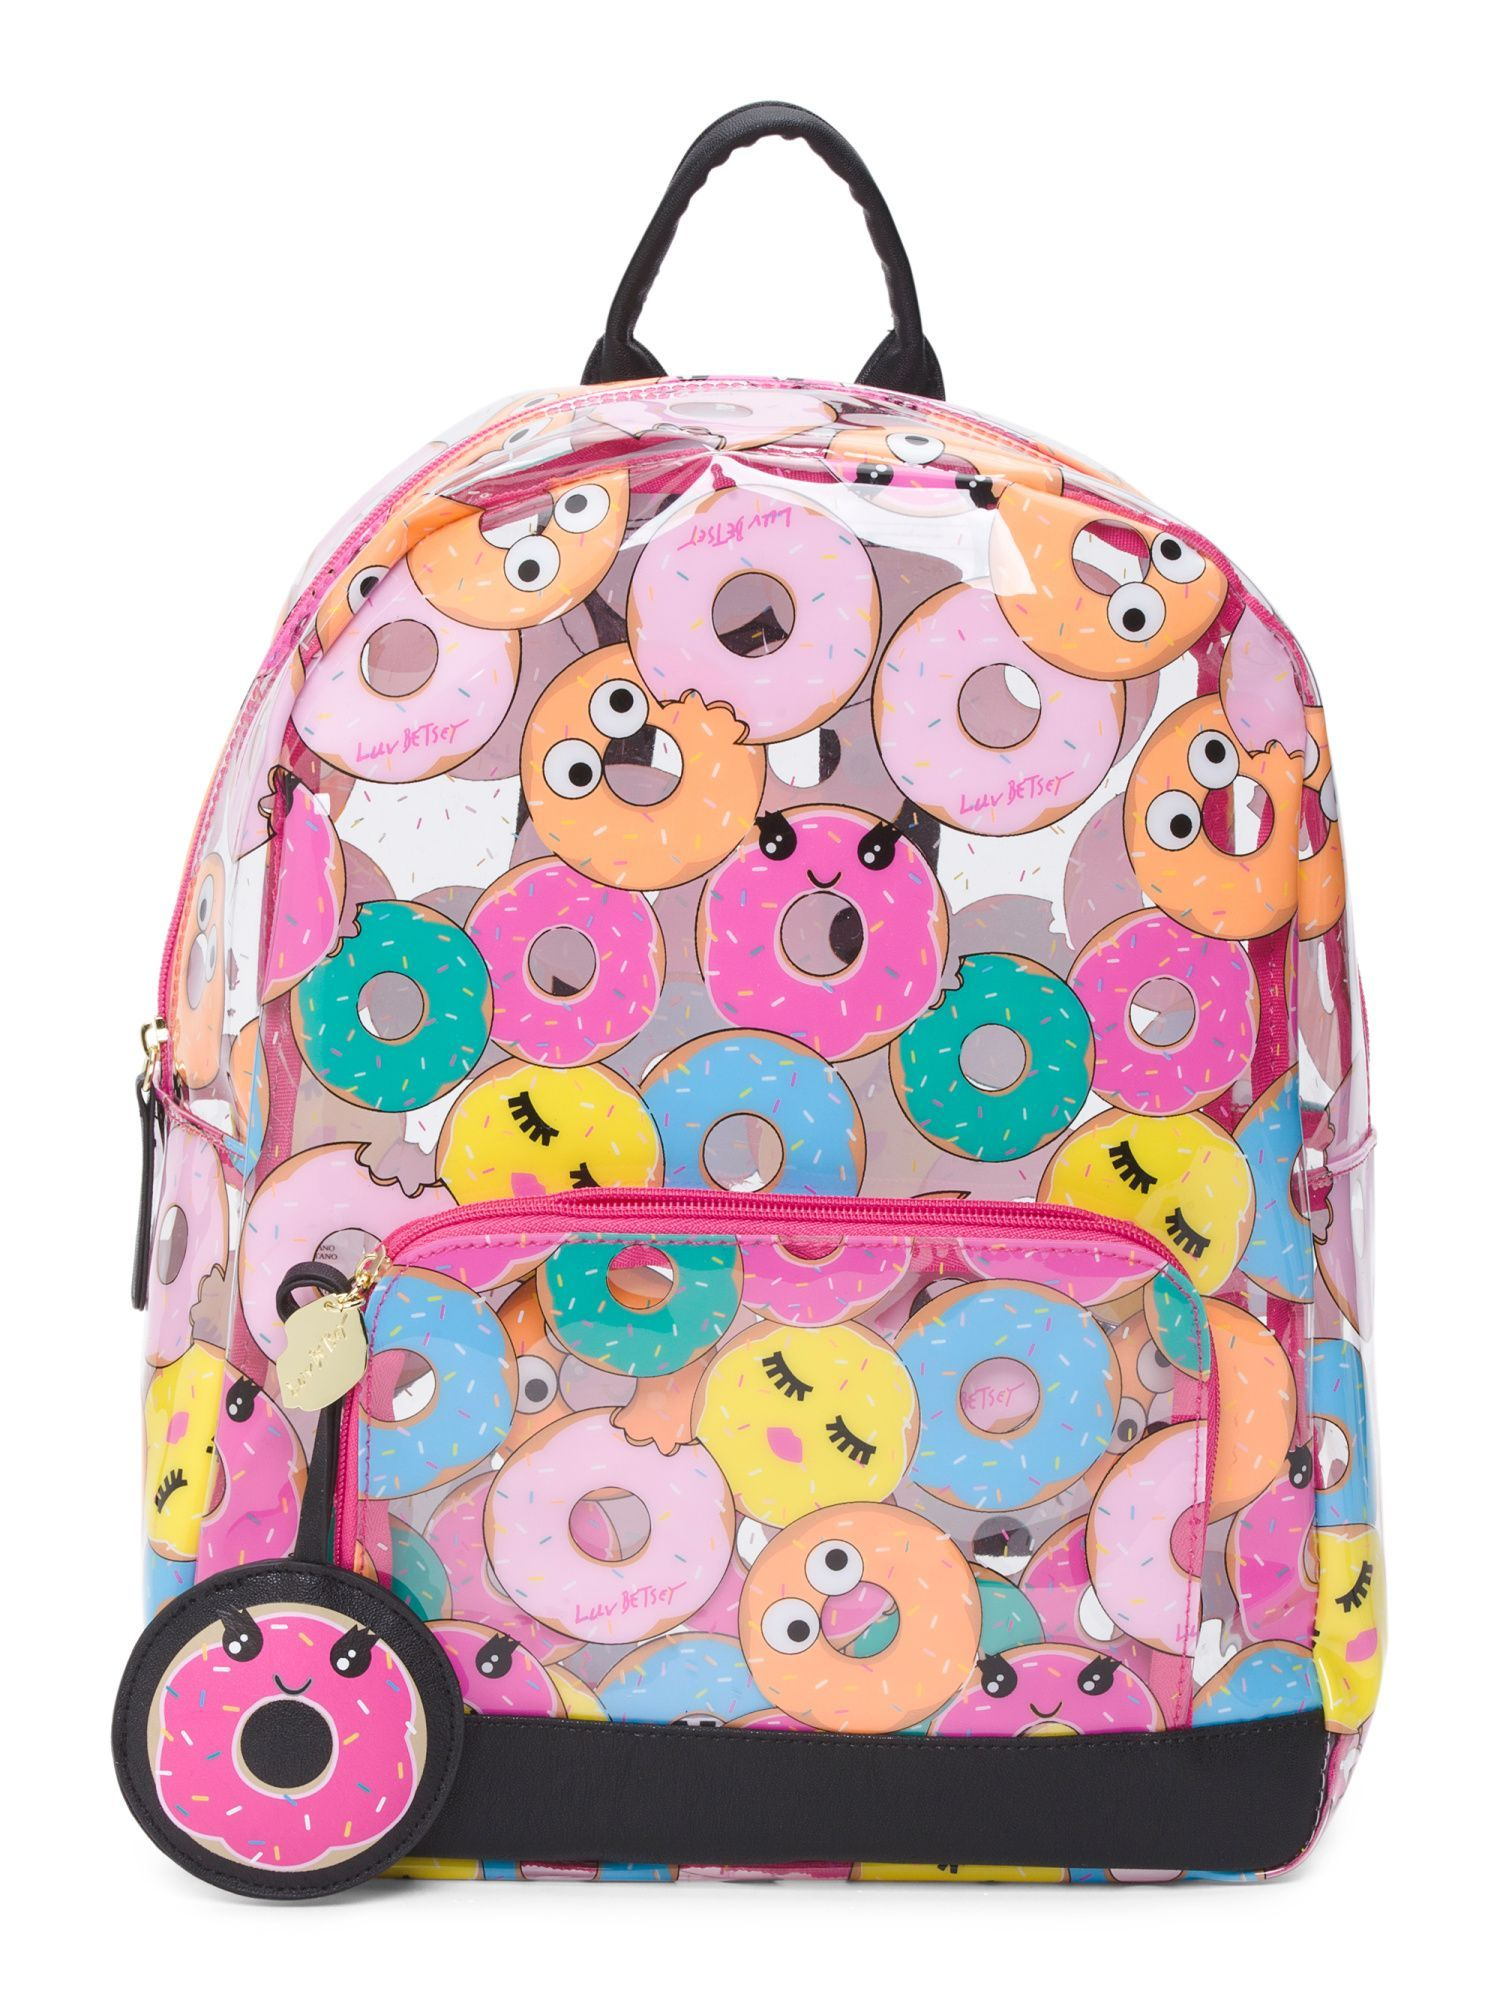 8f185b3491 Back To School Shopping · Clear Donut Print Backpack Backpack Straps,  Leather Backpack, Leather Bags, Lightweight Luggage,